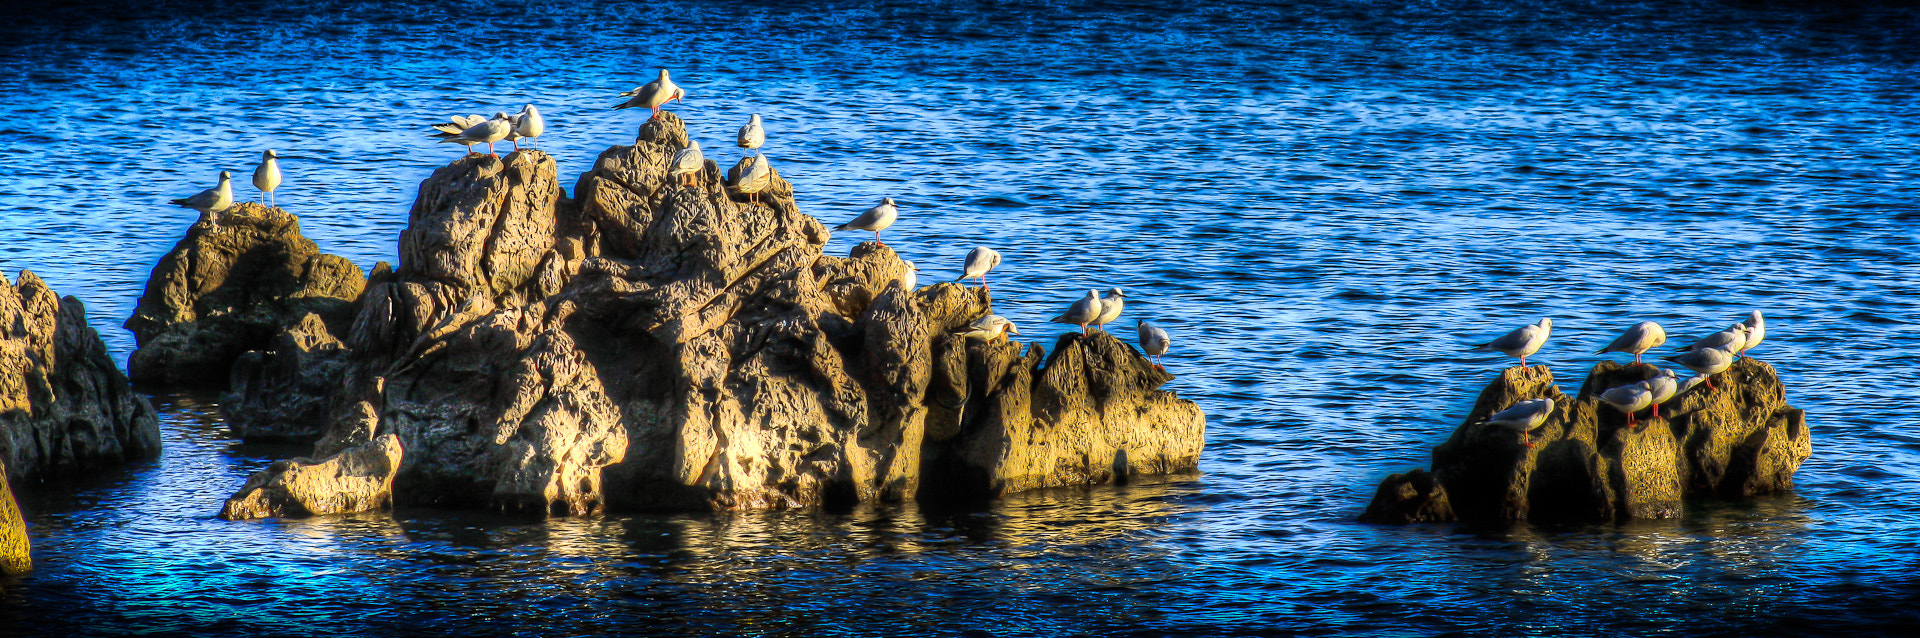 Photograph Gull Invasion by Daniel Troha on 500px